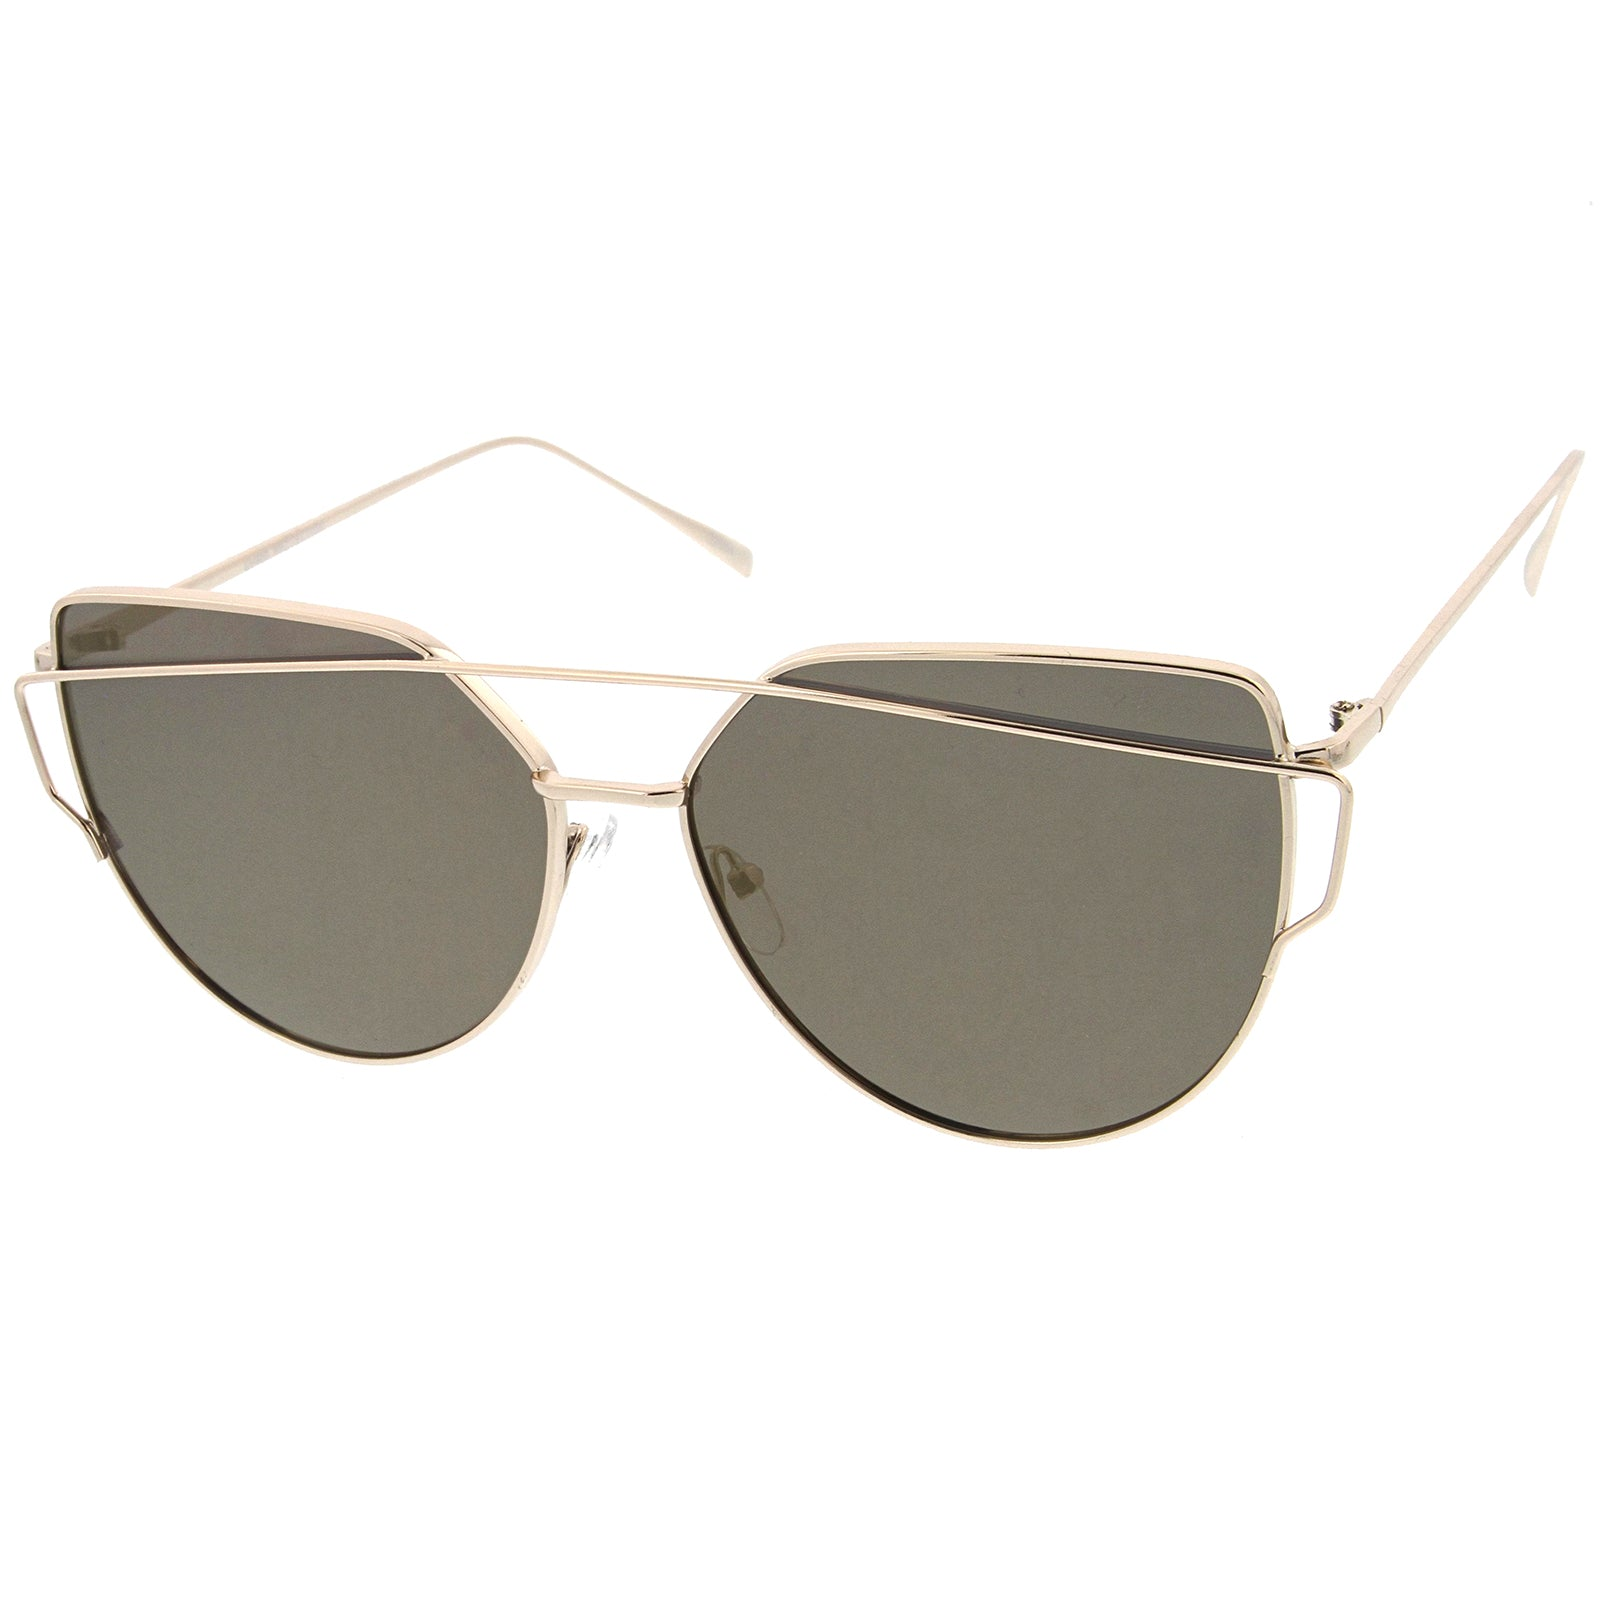 Oversize Metal Frame Thin Temple Color Mirror Flat Lens Aviator Sunglasses 62mm - sunglass.la - 18